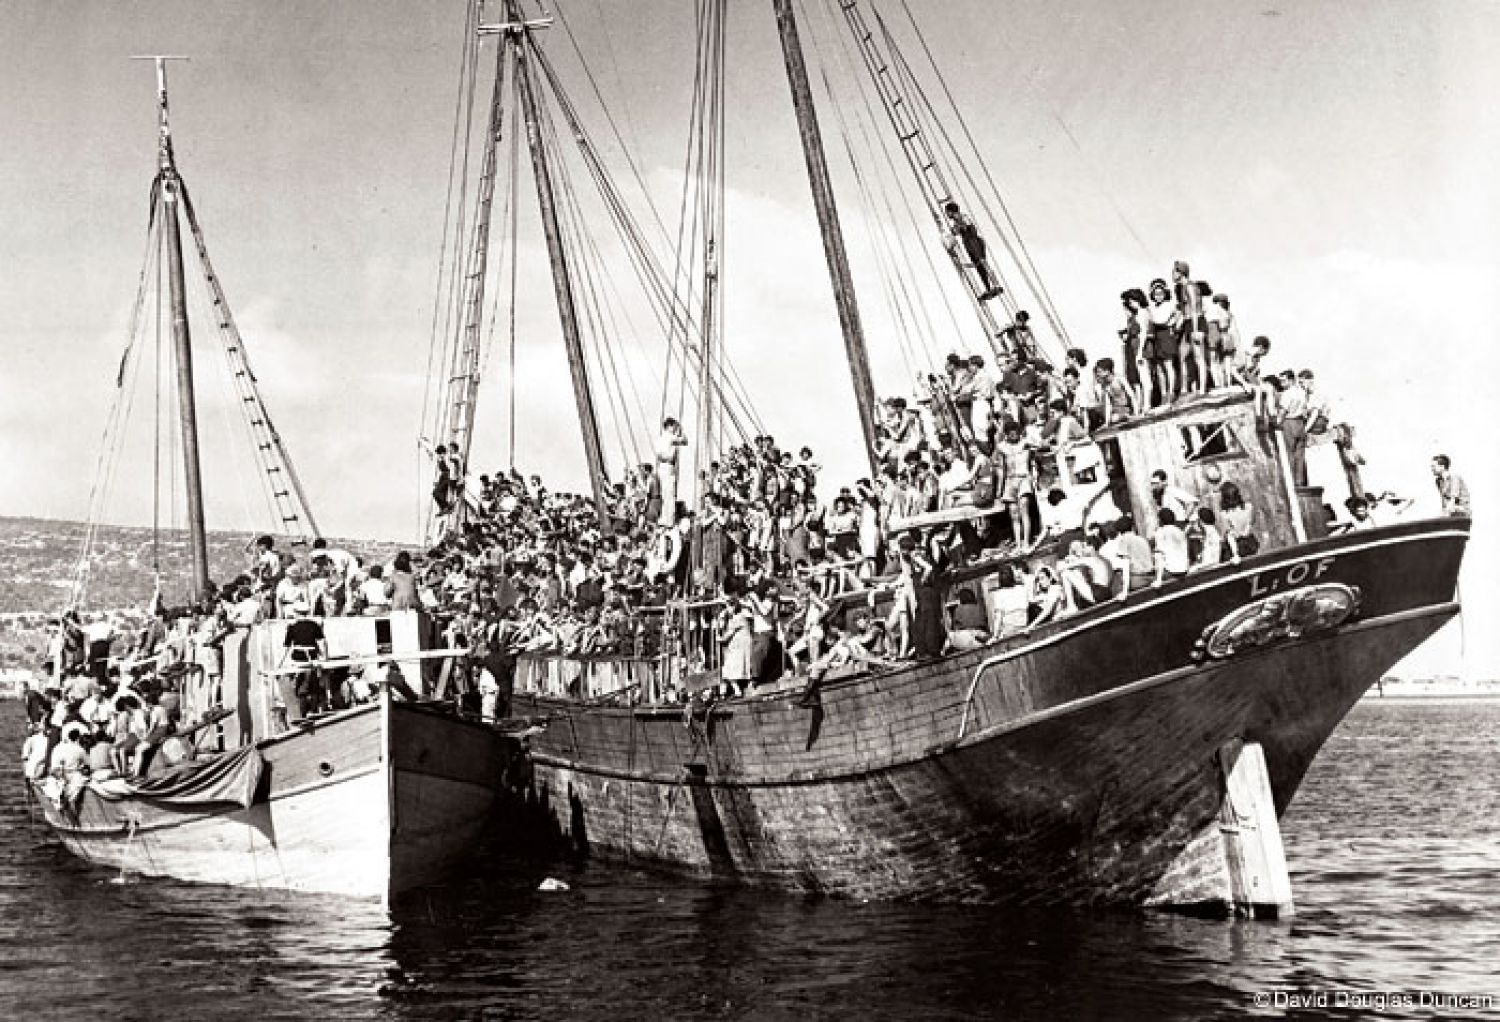 In July 1946, Duncan documented ships with thousands of Jewish refugees and Holocaust survivors attempting to enter Palestine at the Port of Haifa.